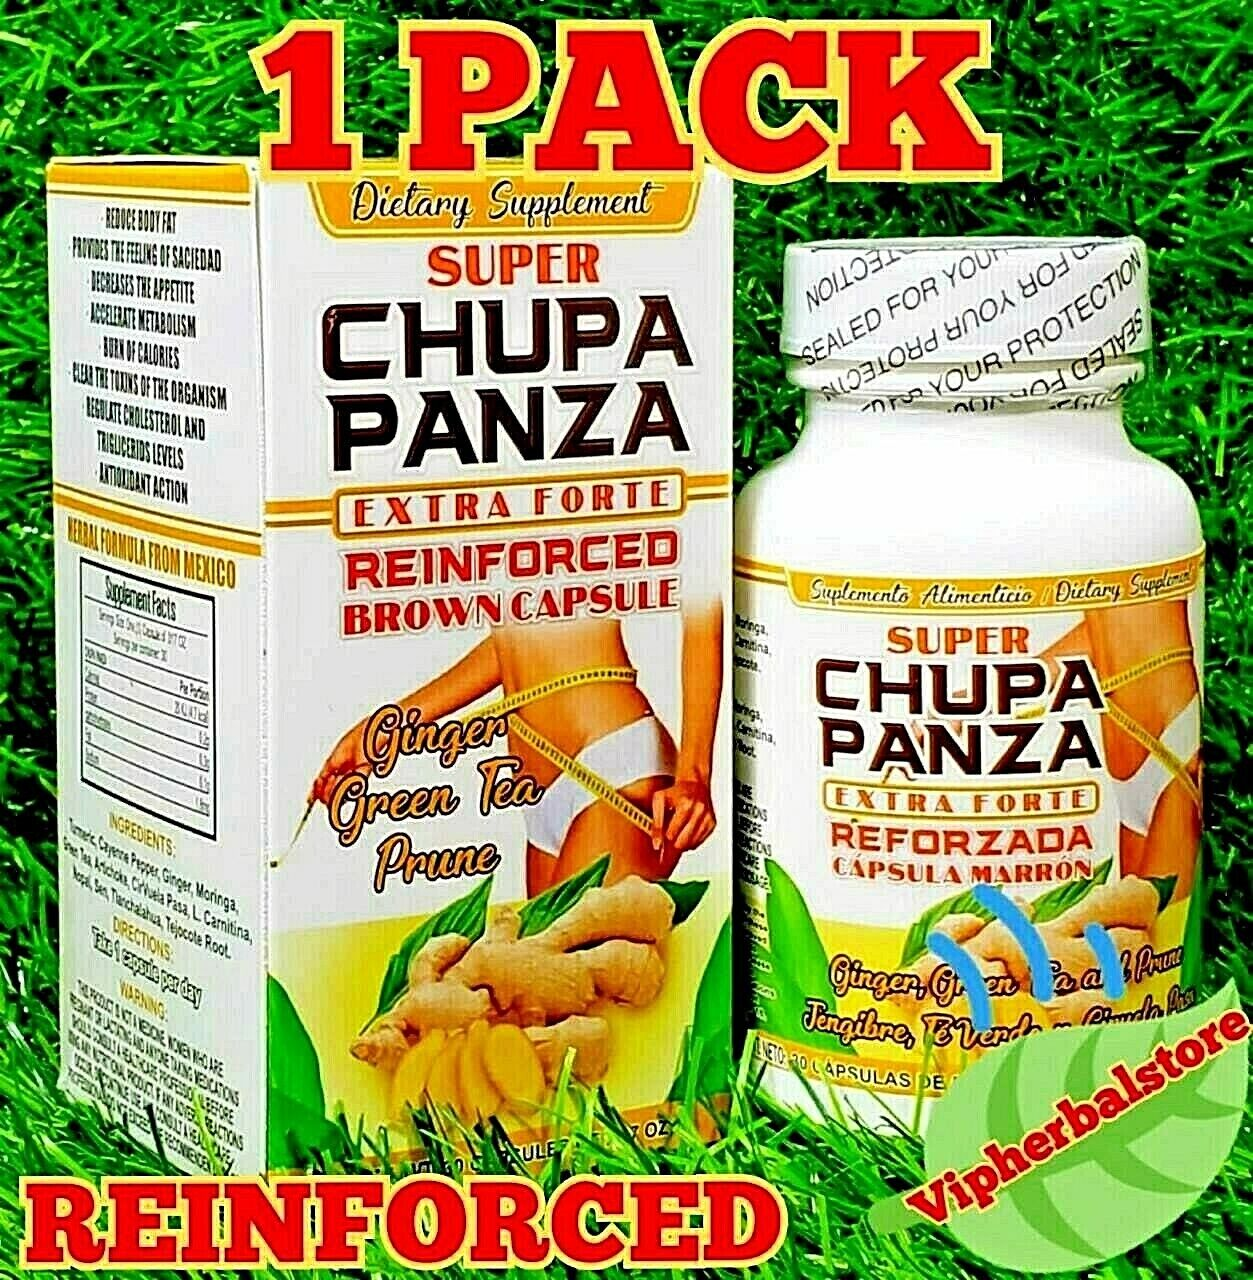 super chupa panza extra forte reinforced brown